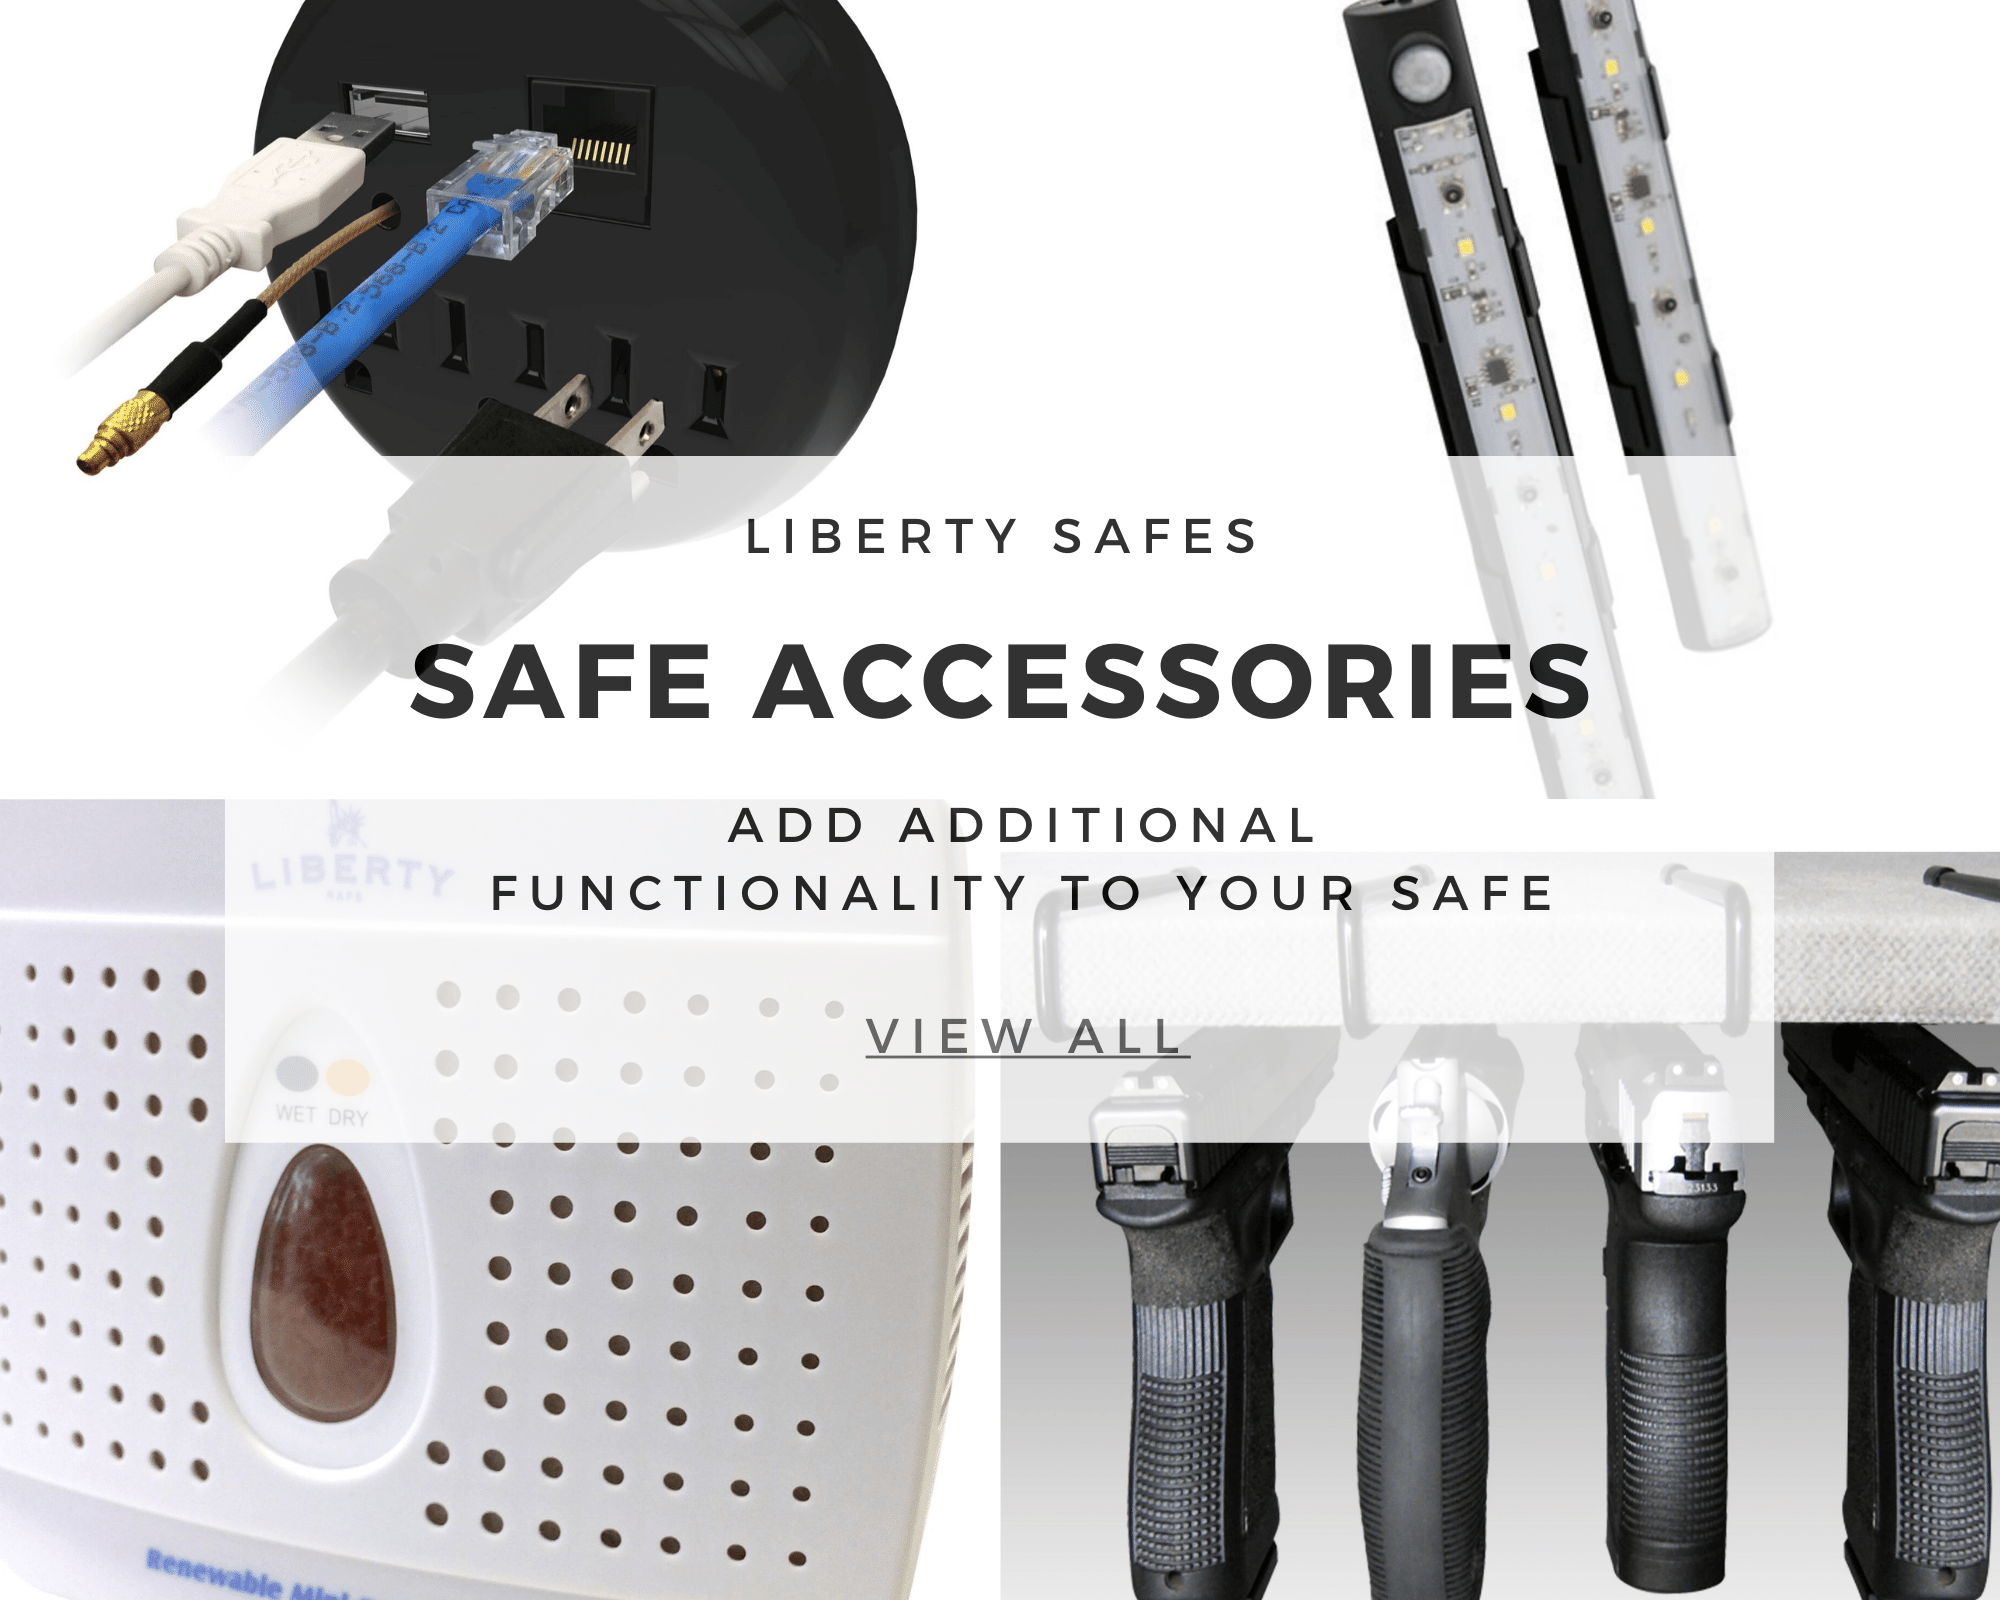 safe accessory text with pictures of dehumidifier, lights, outlet for safes